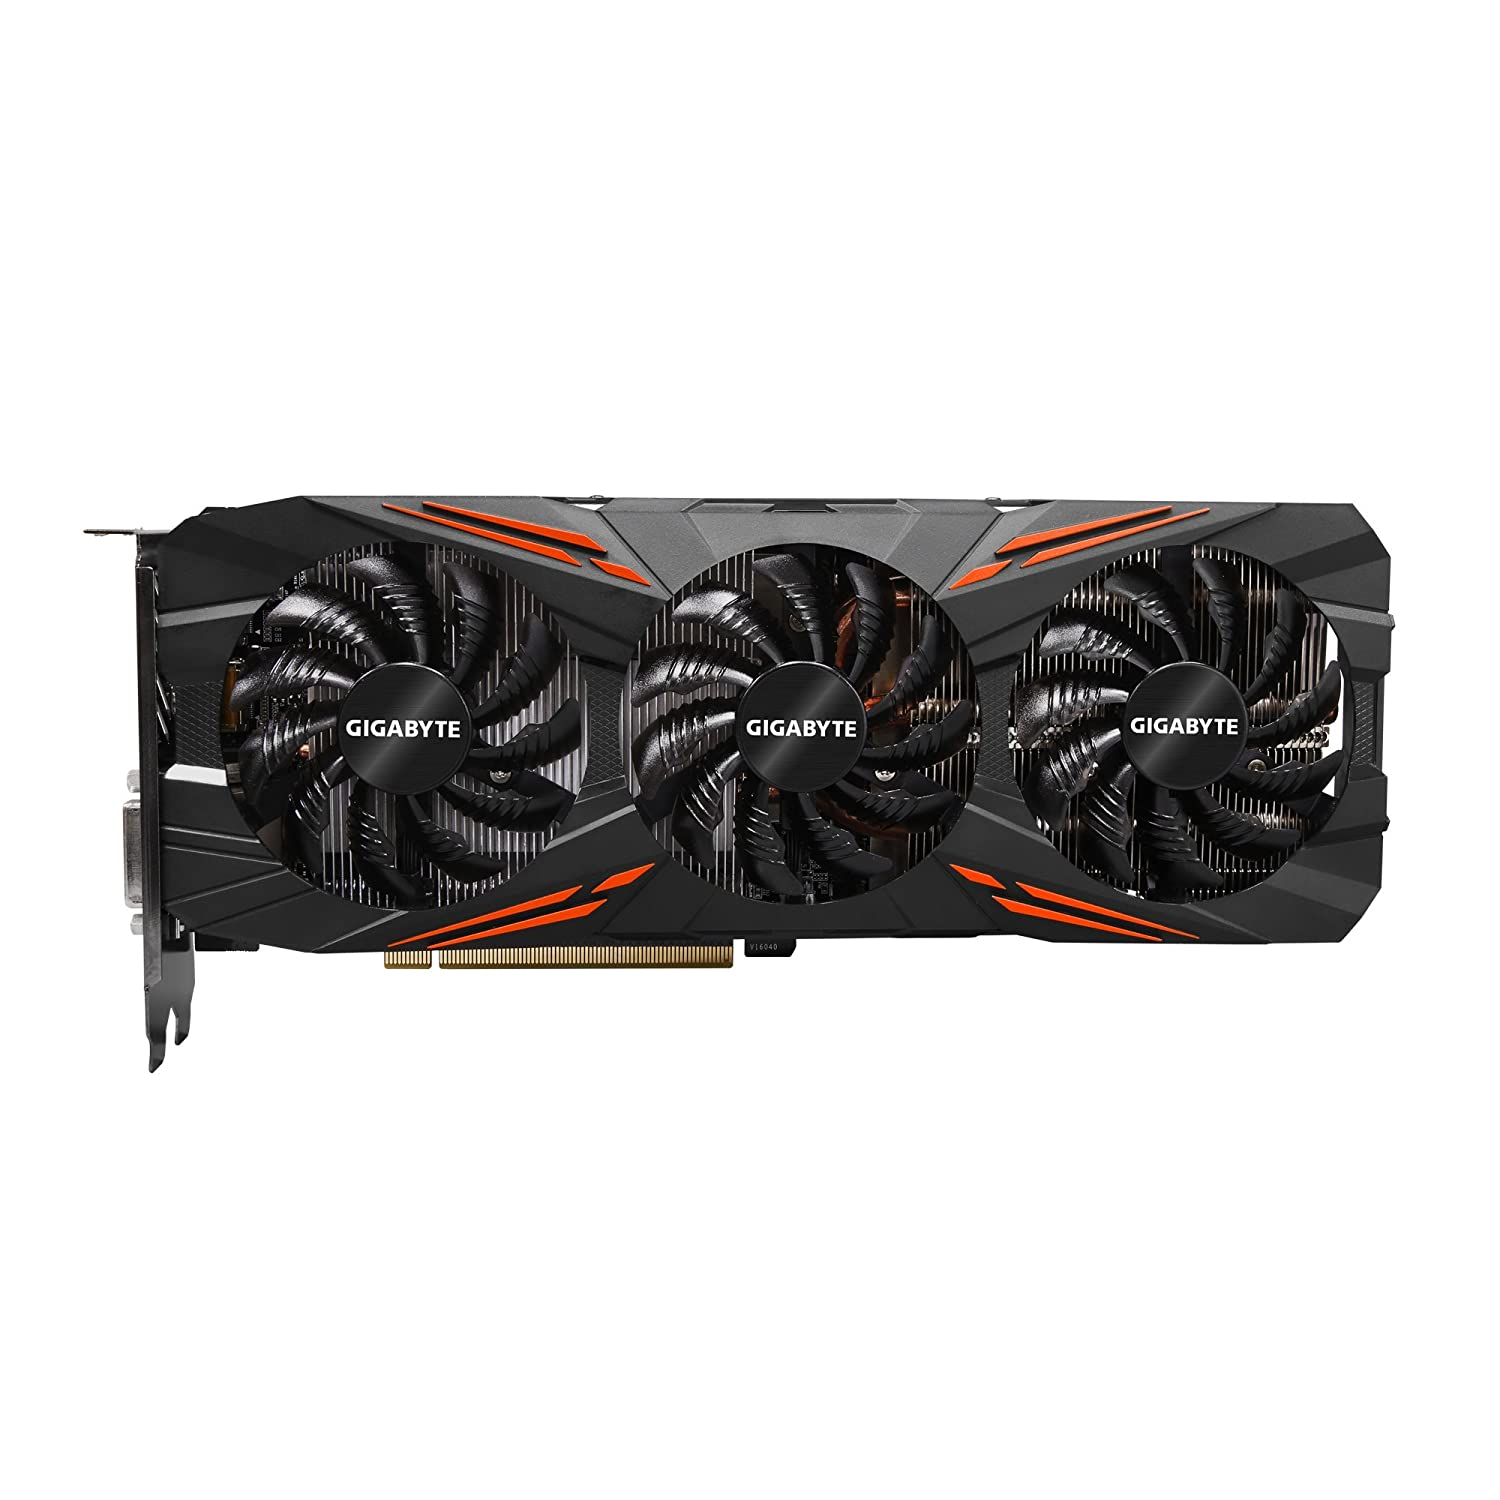 Gigabyte gtx 750 ti windforce review pure overclock page 3 - Gigabyte Nvidia Geforce Gtx 1080 G1 Gaming Amazon Co Uk Computers Accessories